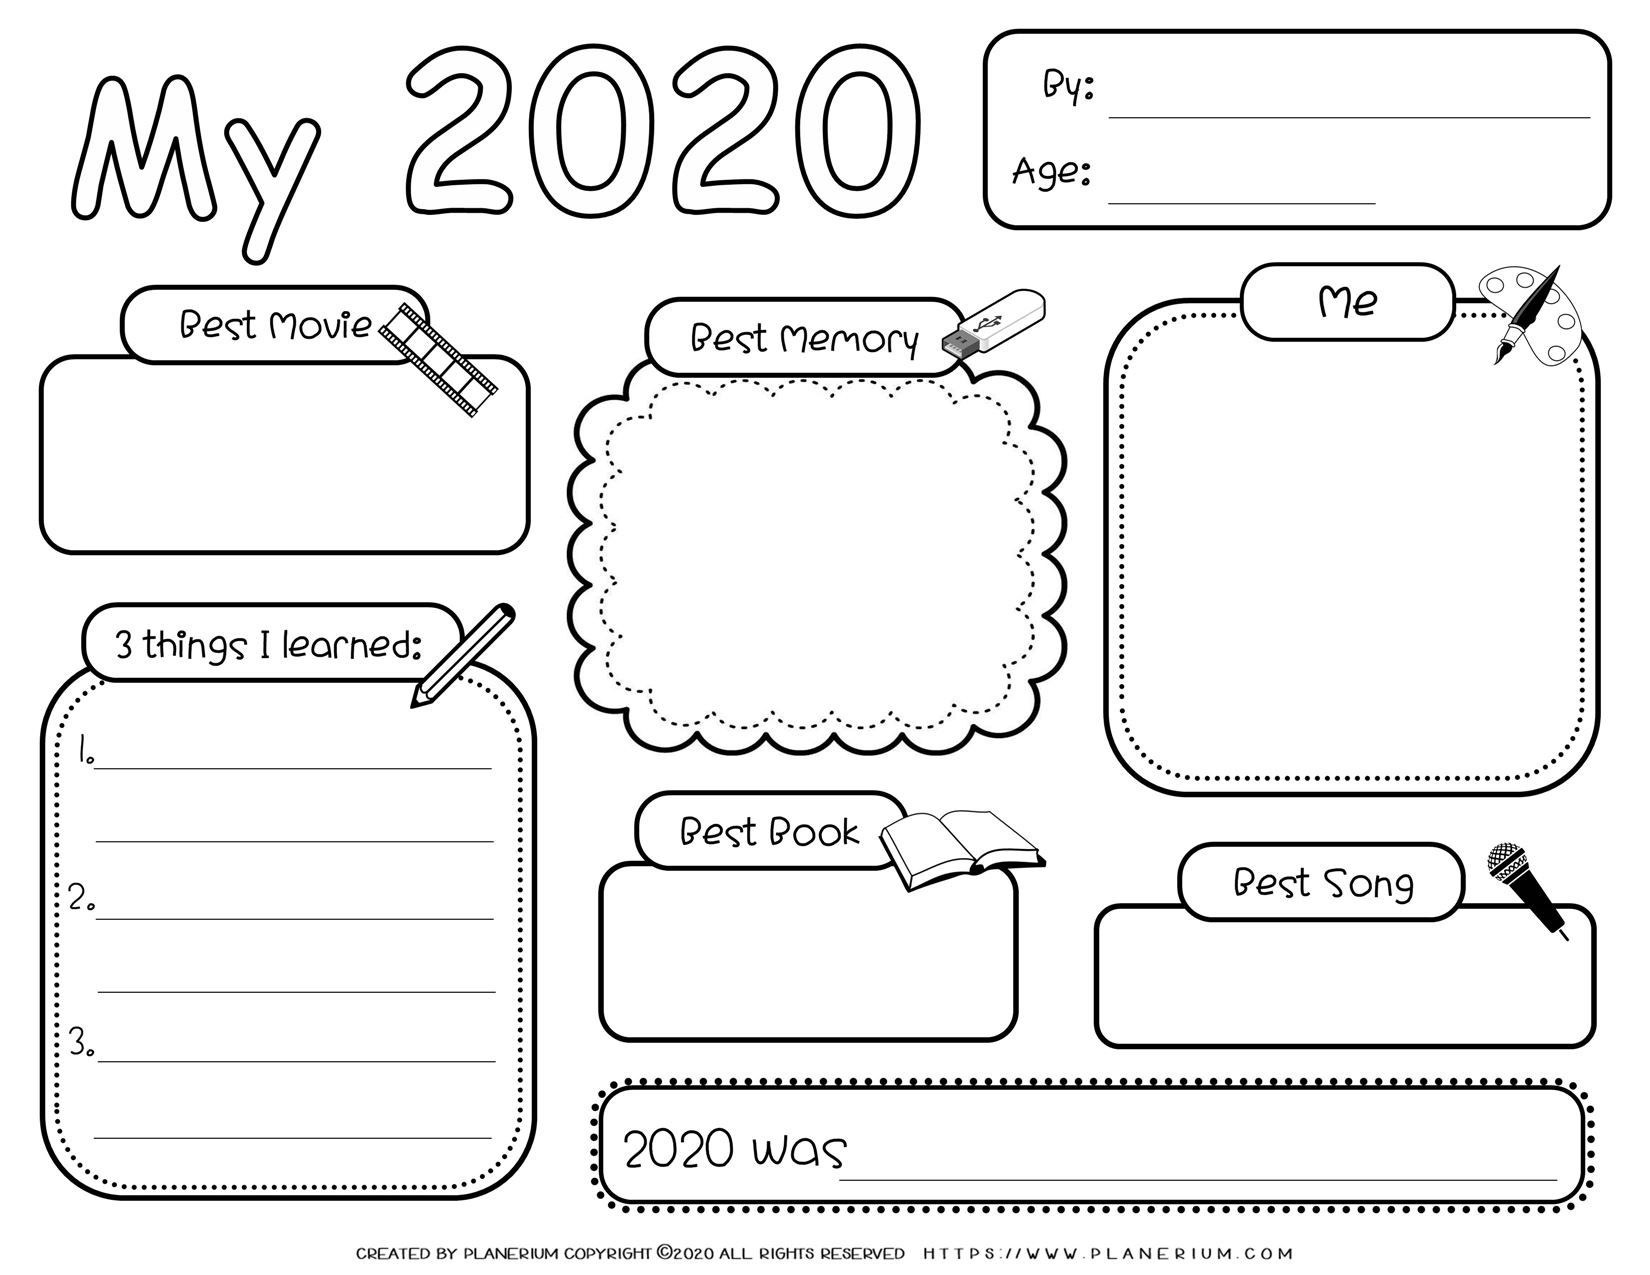 Self Reflection For 2020 Free Writing Activity Planerium In 2021 Reflection Activities Student Reflection Writing Activities Free writing worksheets for year 2